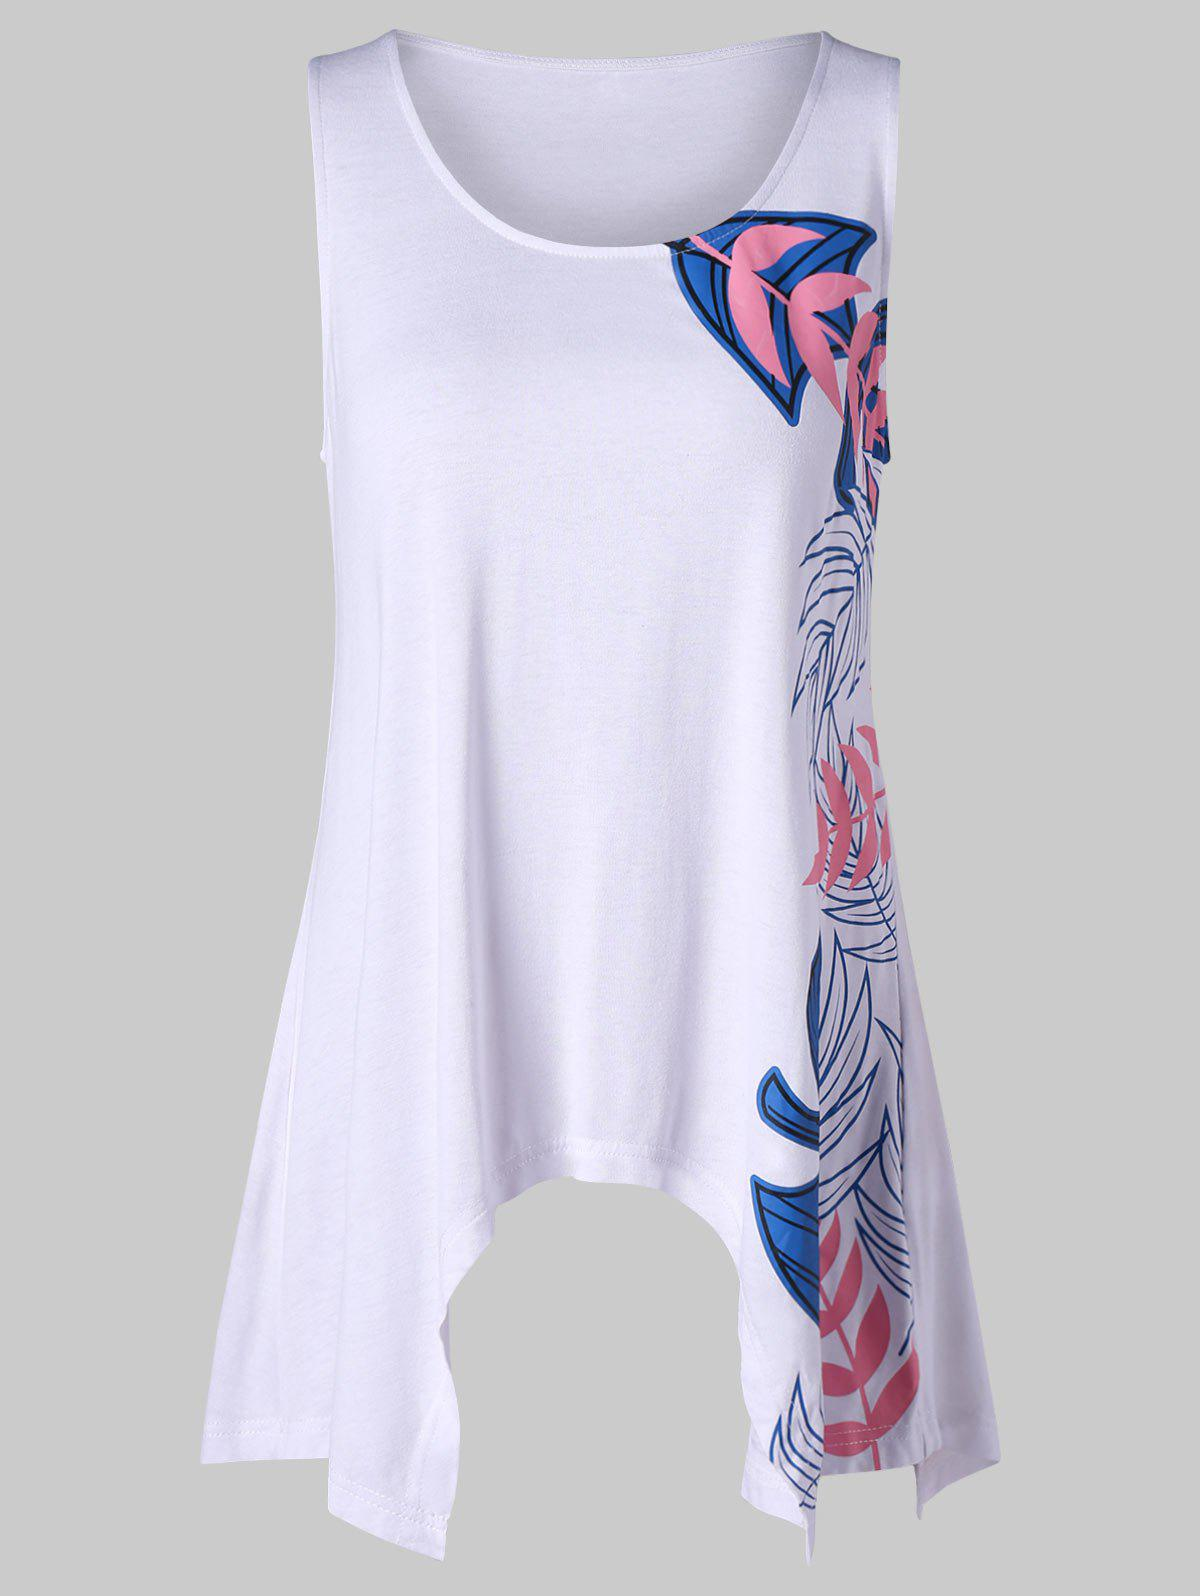 Leaf Print Crescent Hem Tank Top skull cat print crescent hem top